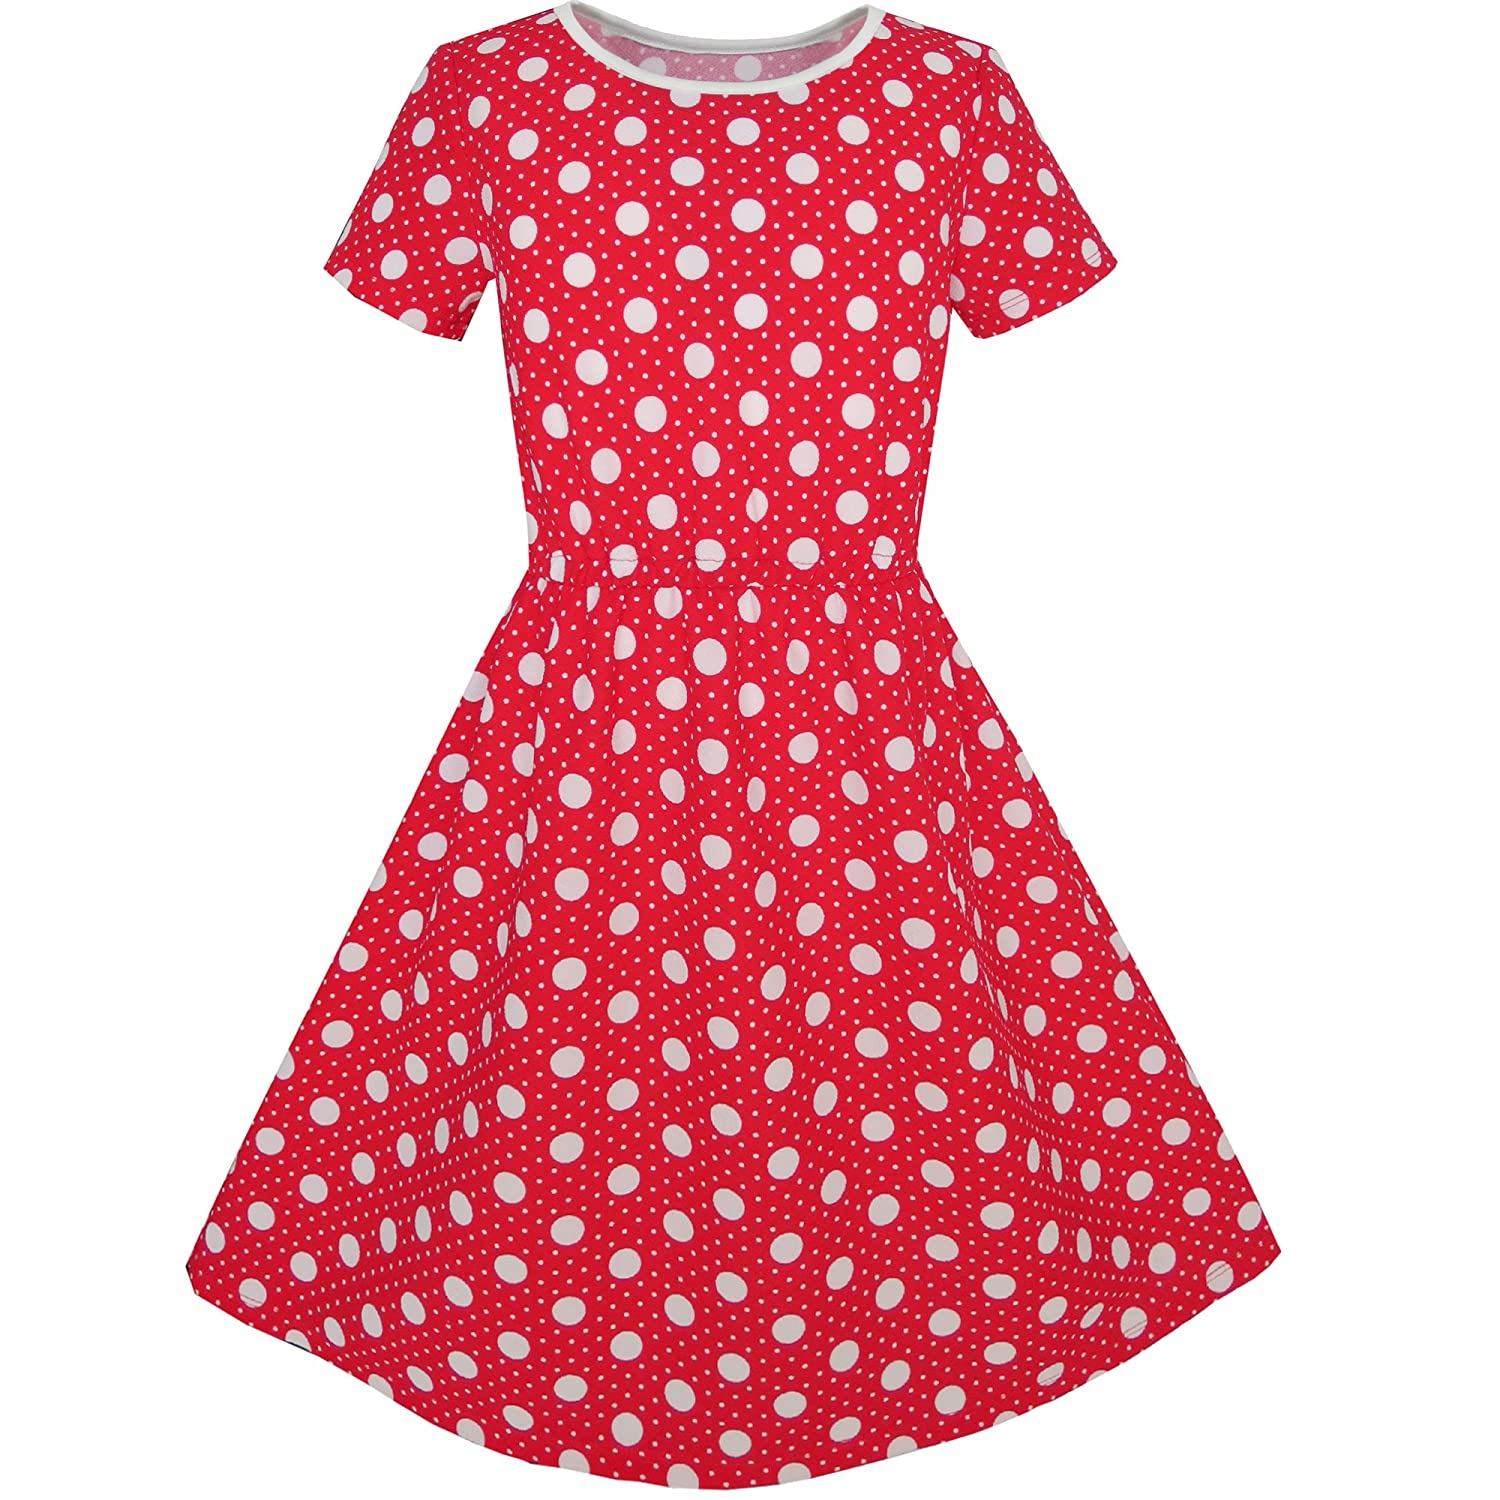 Sunny Fashion Girls Dress Dot Bow Tie Short Sleeve Summer Beach Size 4-12